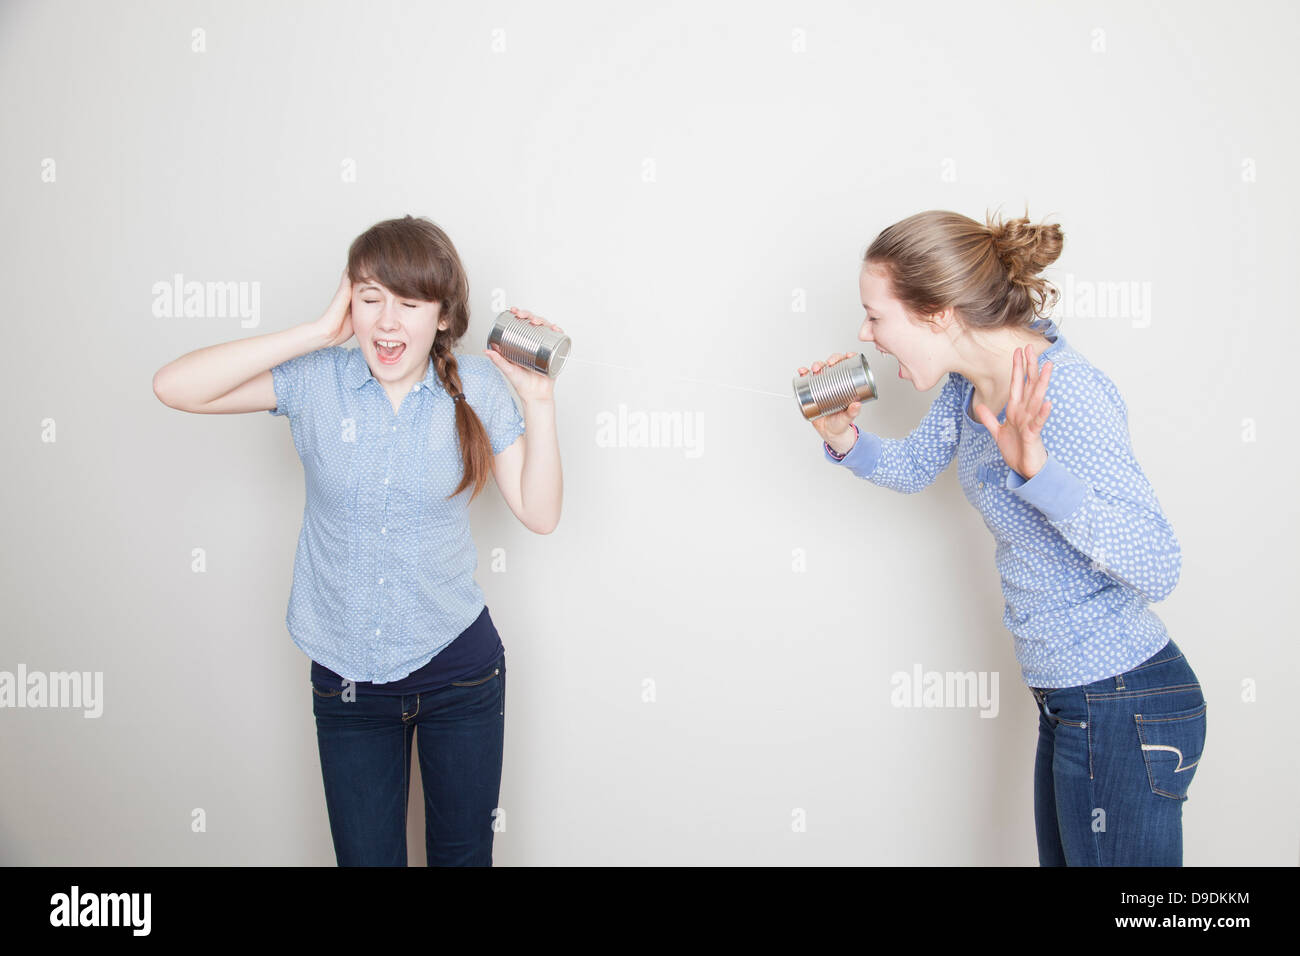 Two girls with tin cans, one shouting and one covering her ear - Stock Image